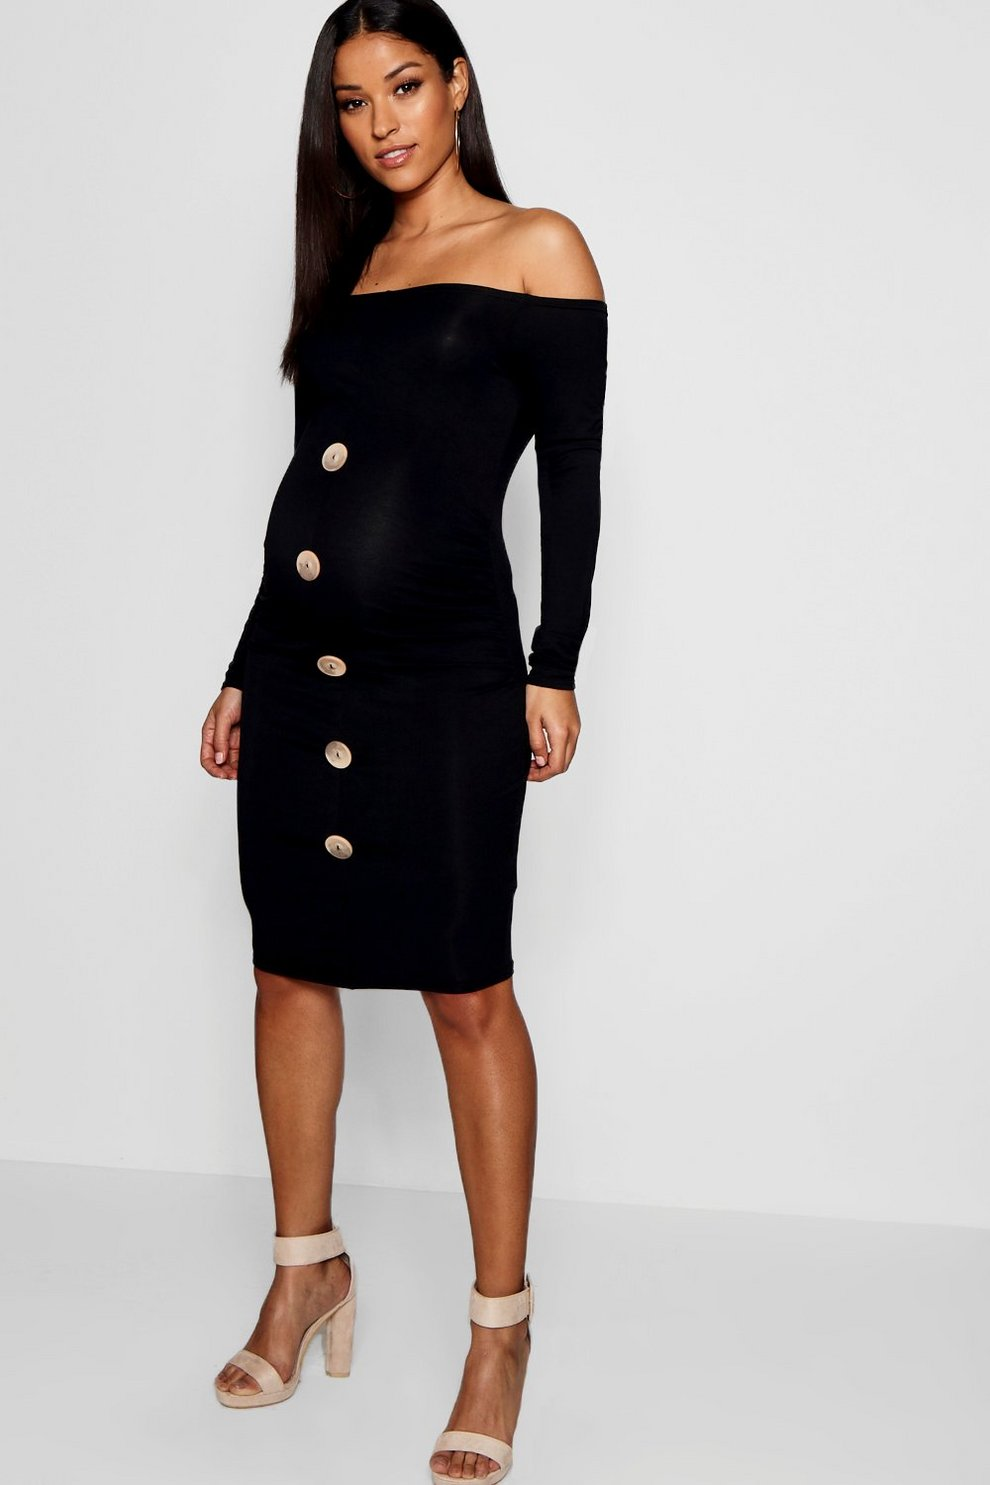 428b017f17 Maternity Off The Shoulder Horn Button Bodycon Dress